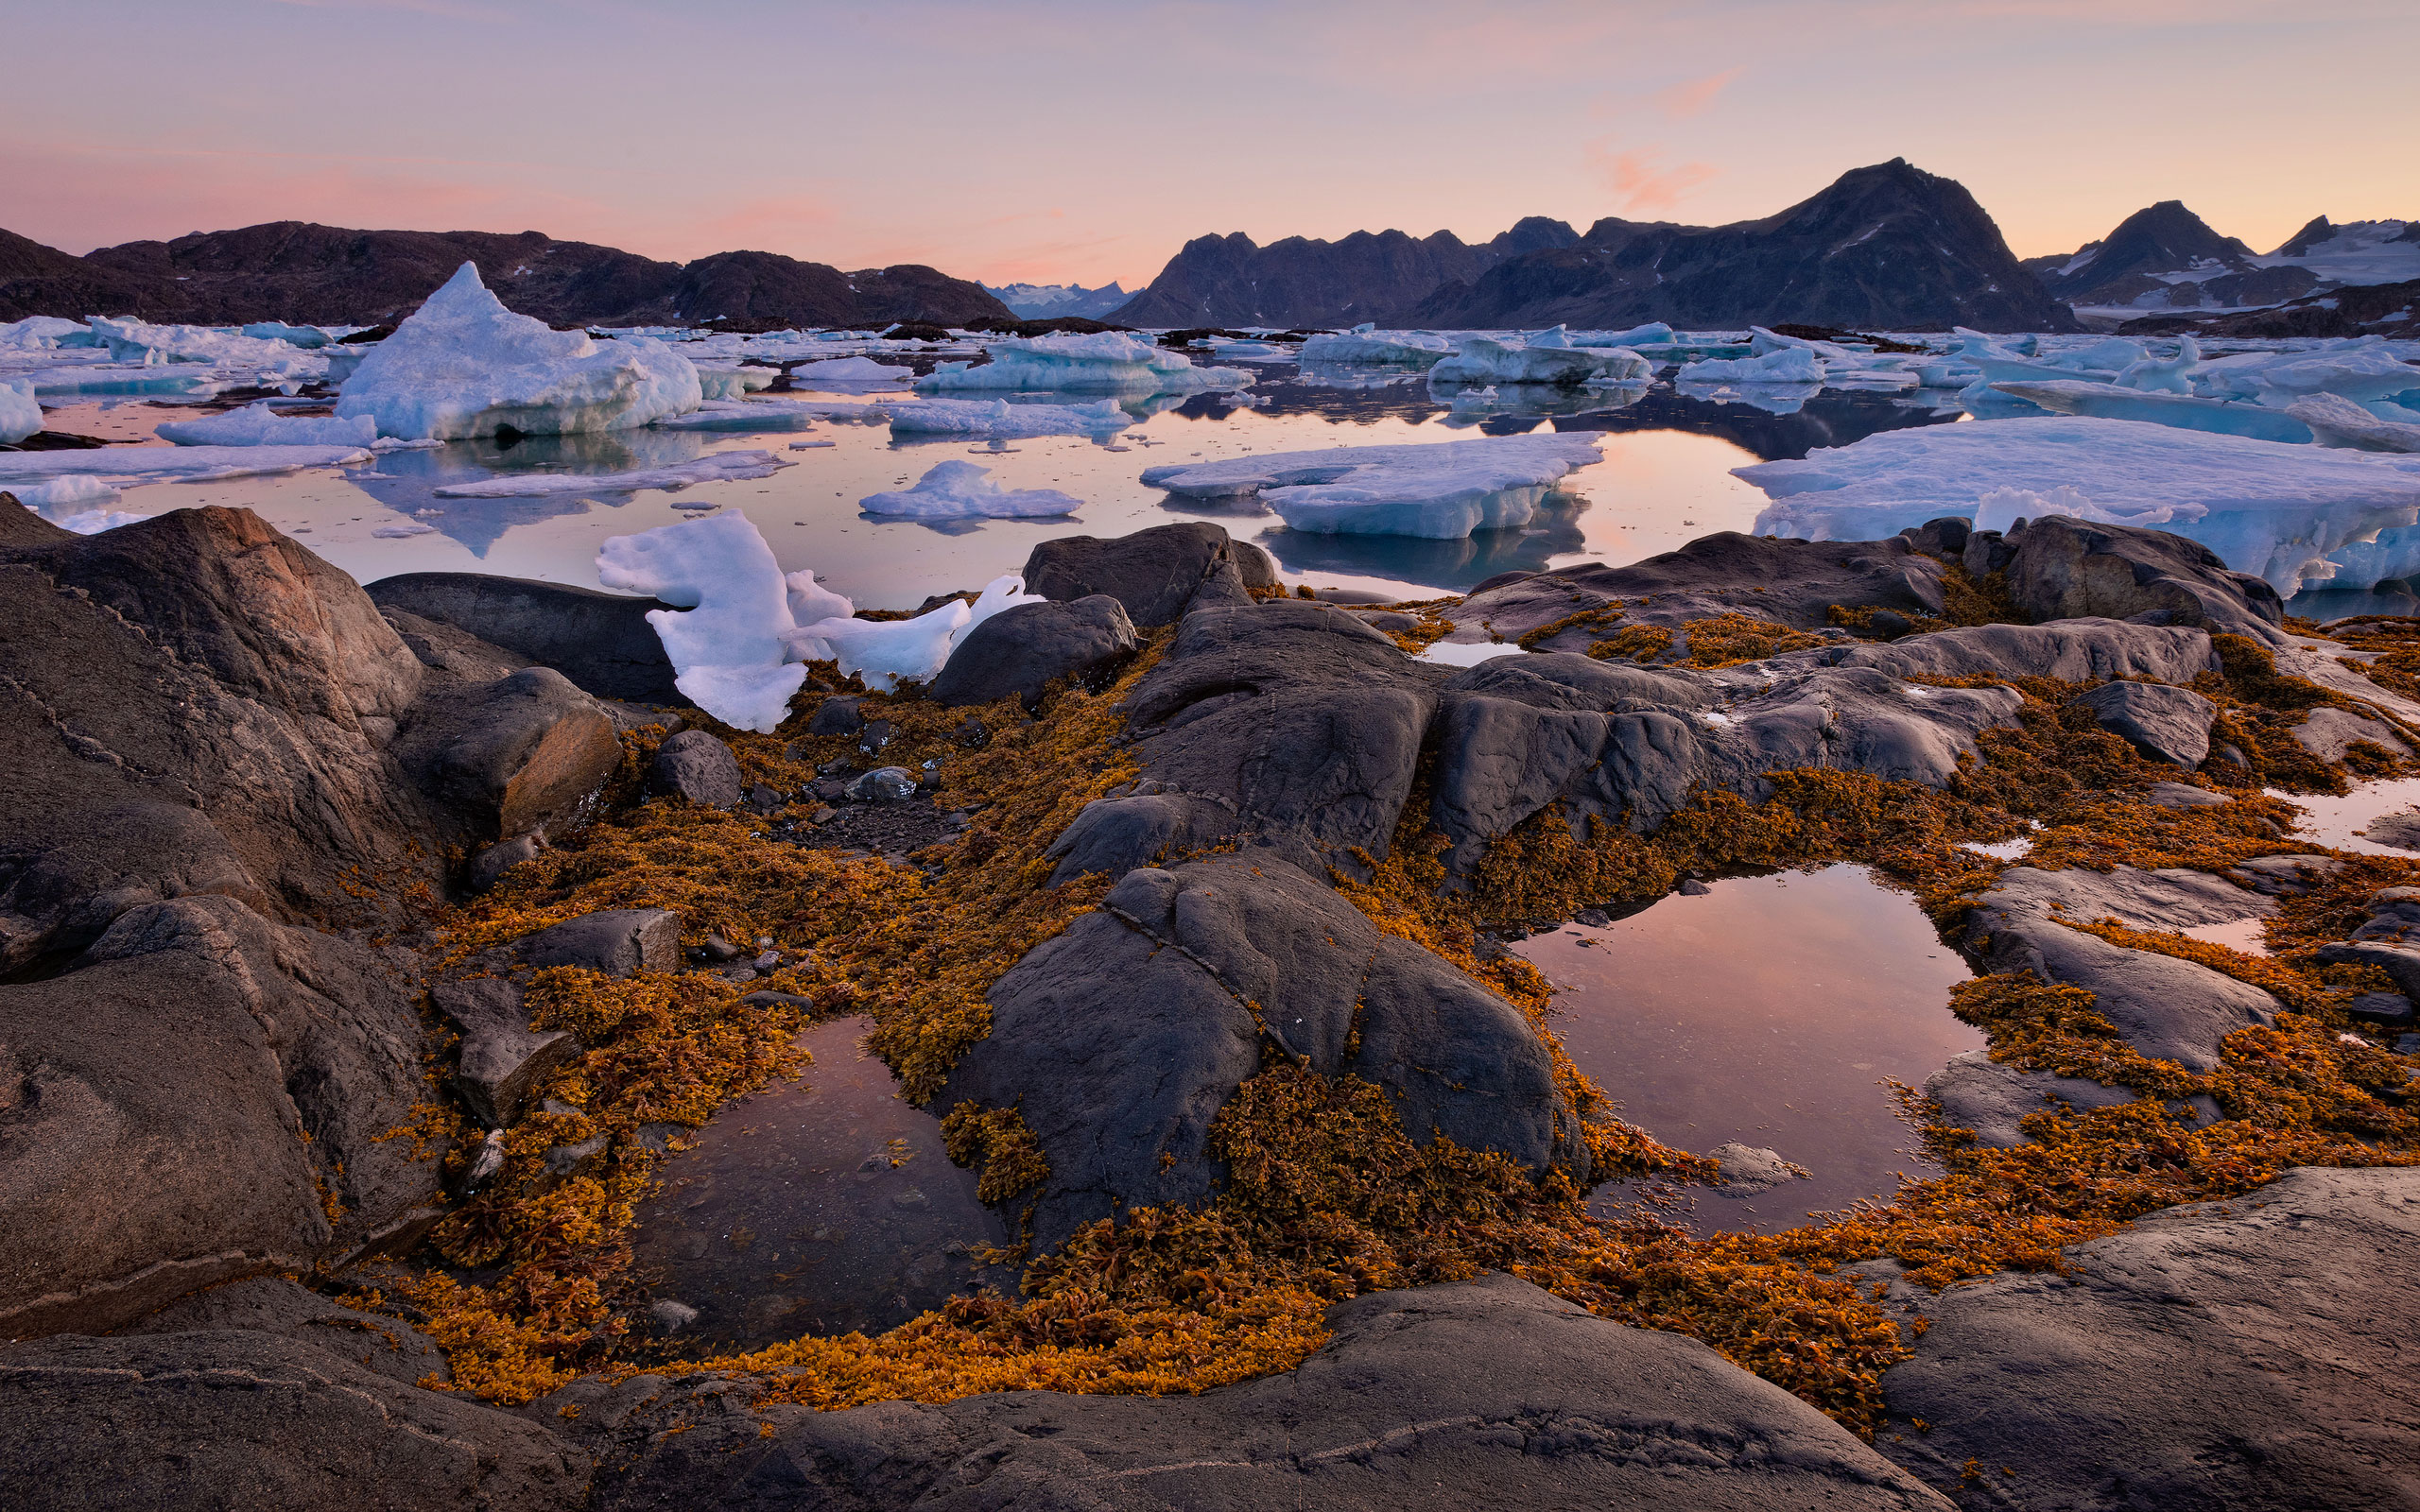 Low tide. Torsuut Tunoq sound at dawn. Southeastern Greenland. - Greenland-Iceberg-Factory-1 - Mike Reyfman Photography